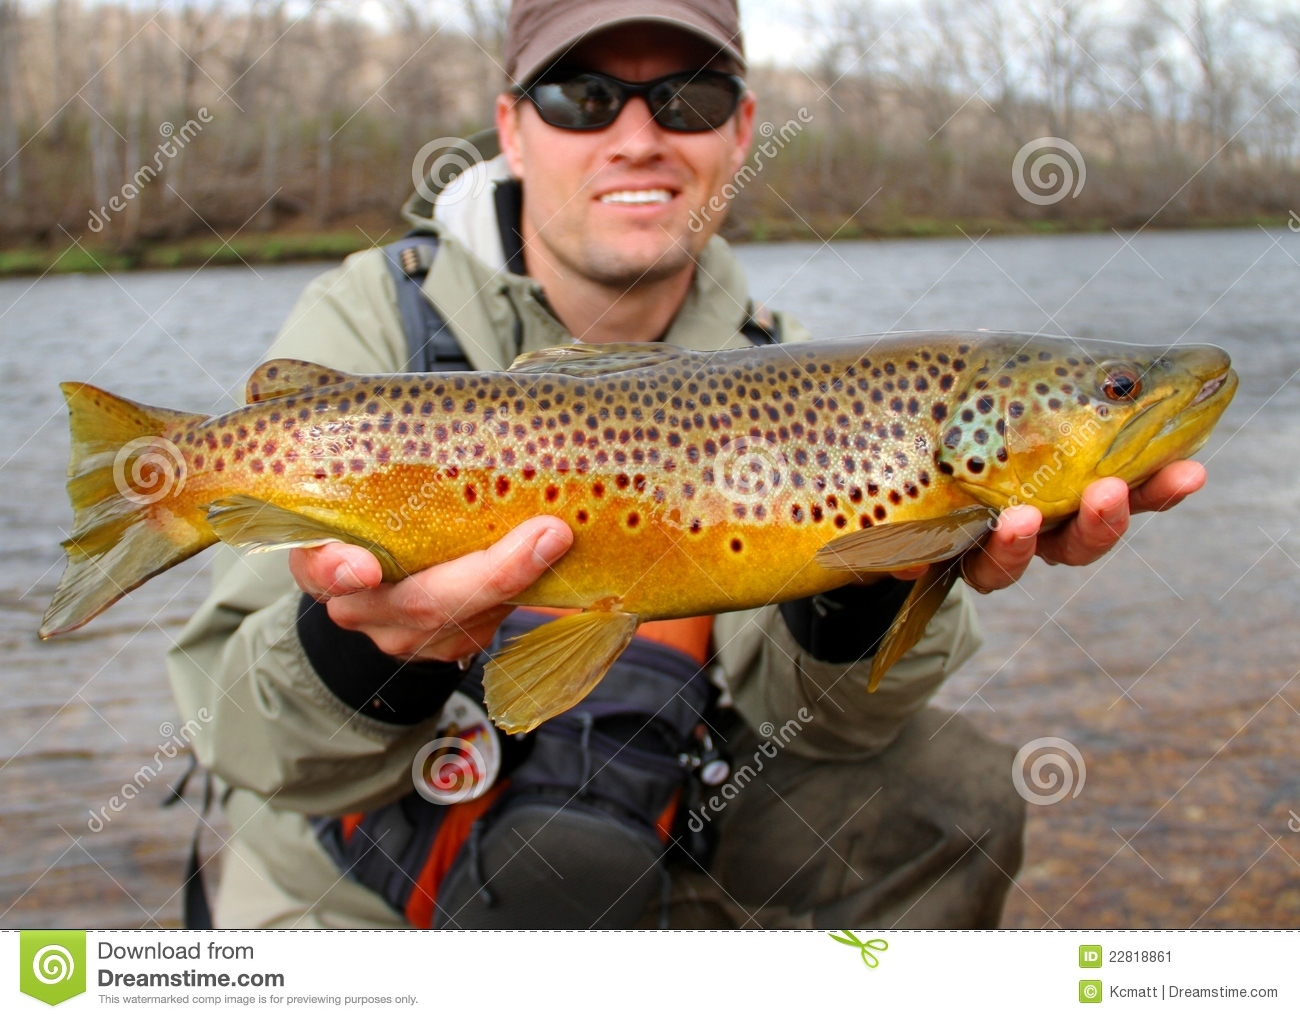 Fly fishing - fisherman with large fish